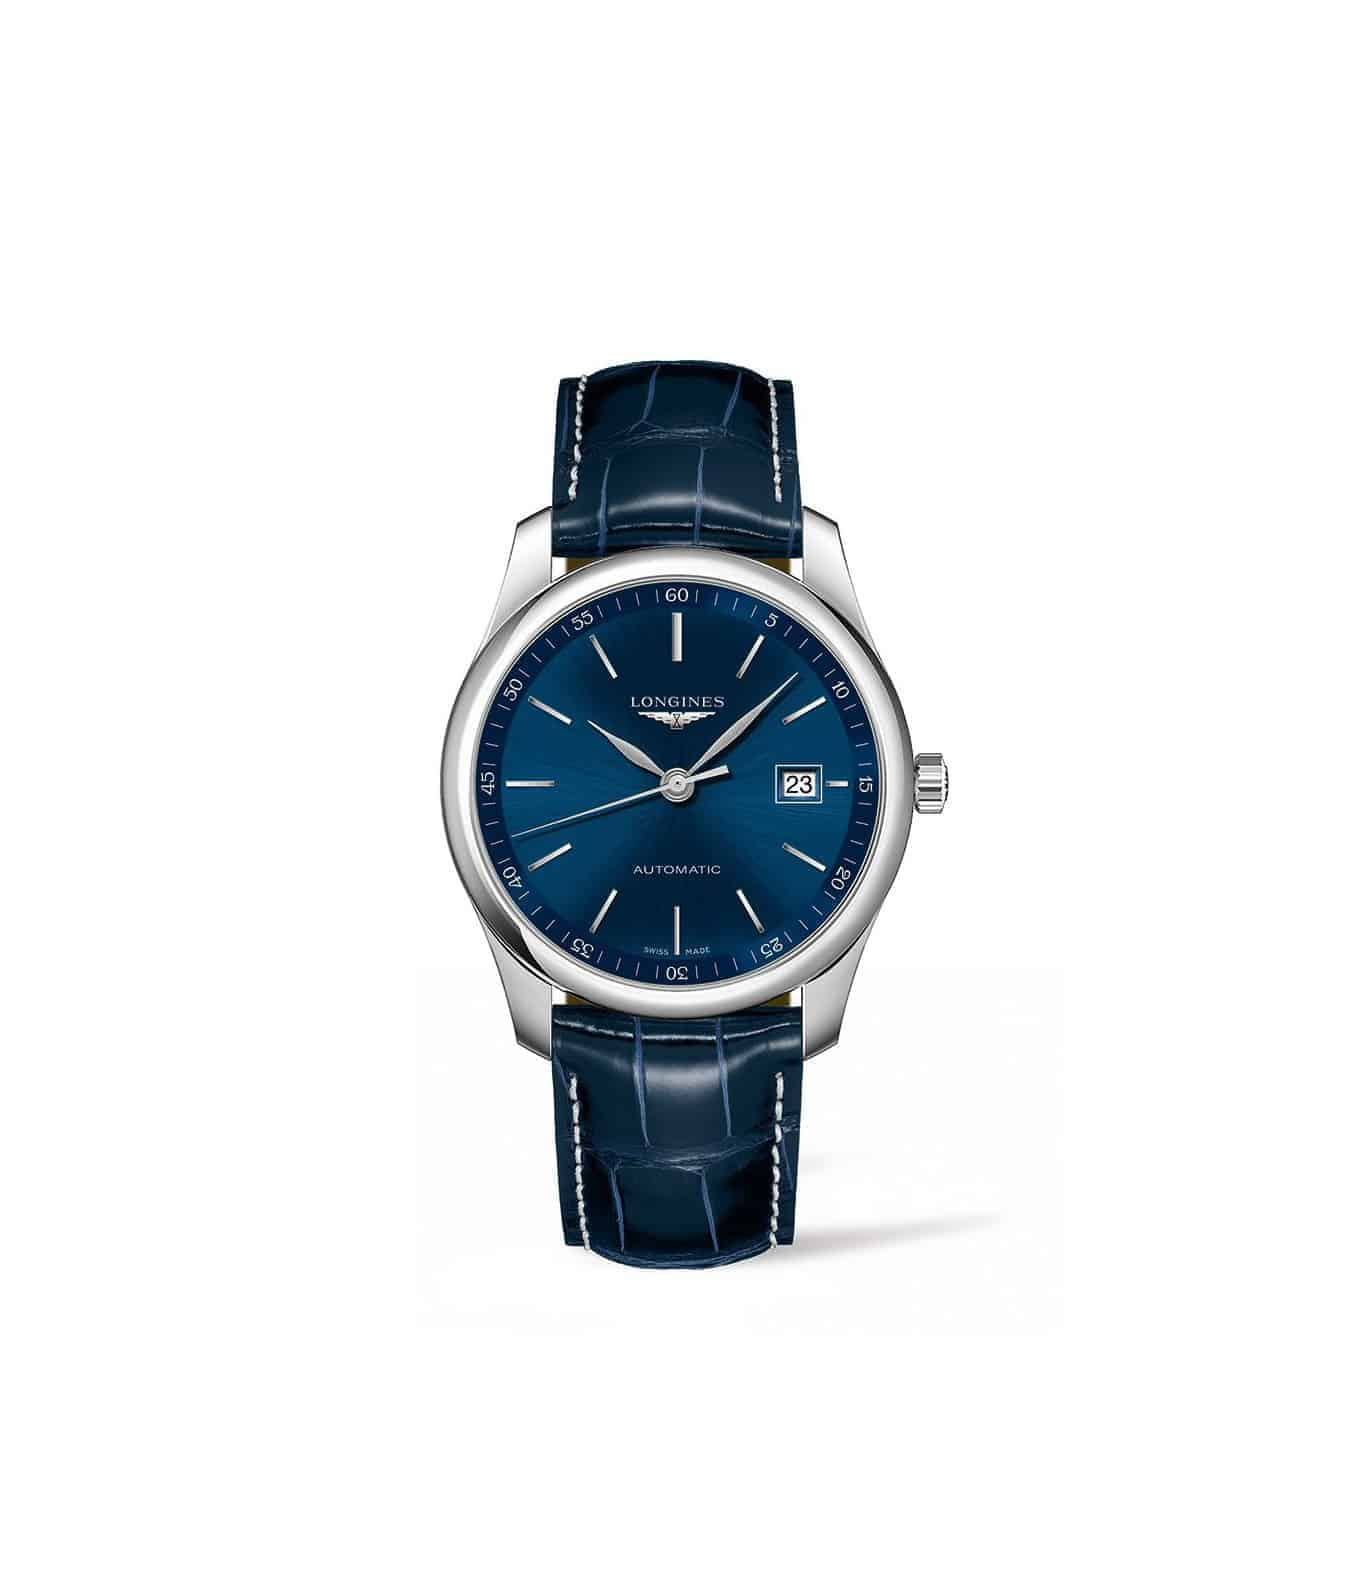 The Longines Master Collection L27934922 S/N 90008715_0